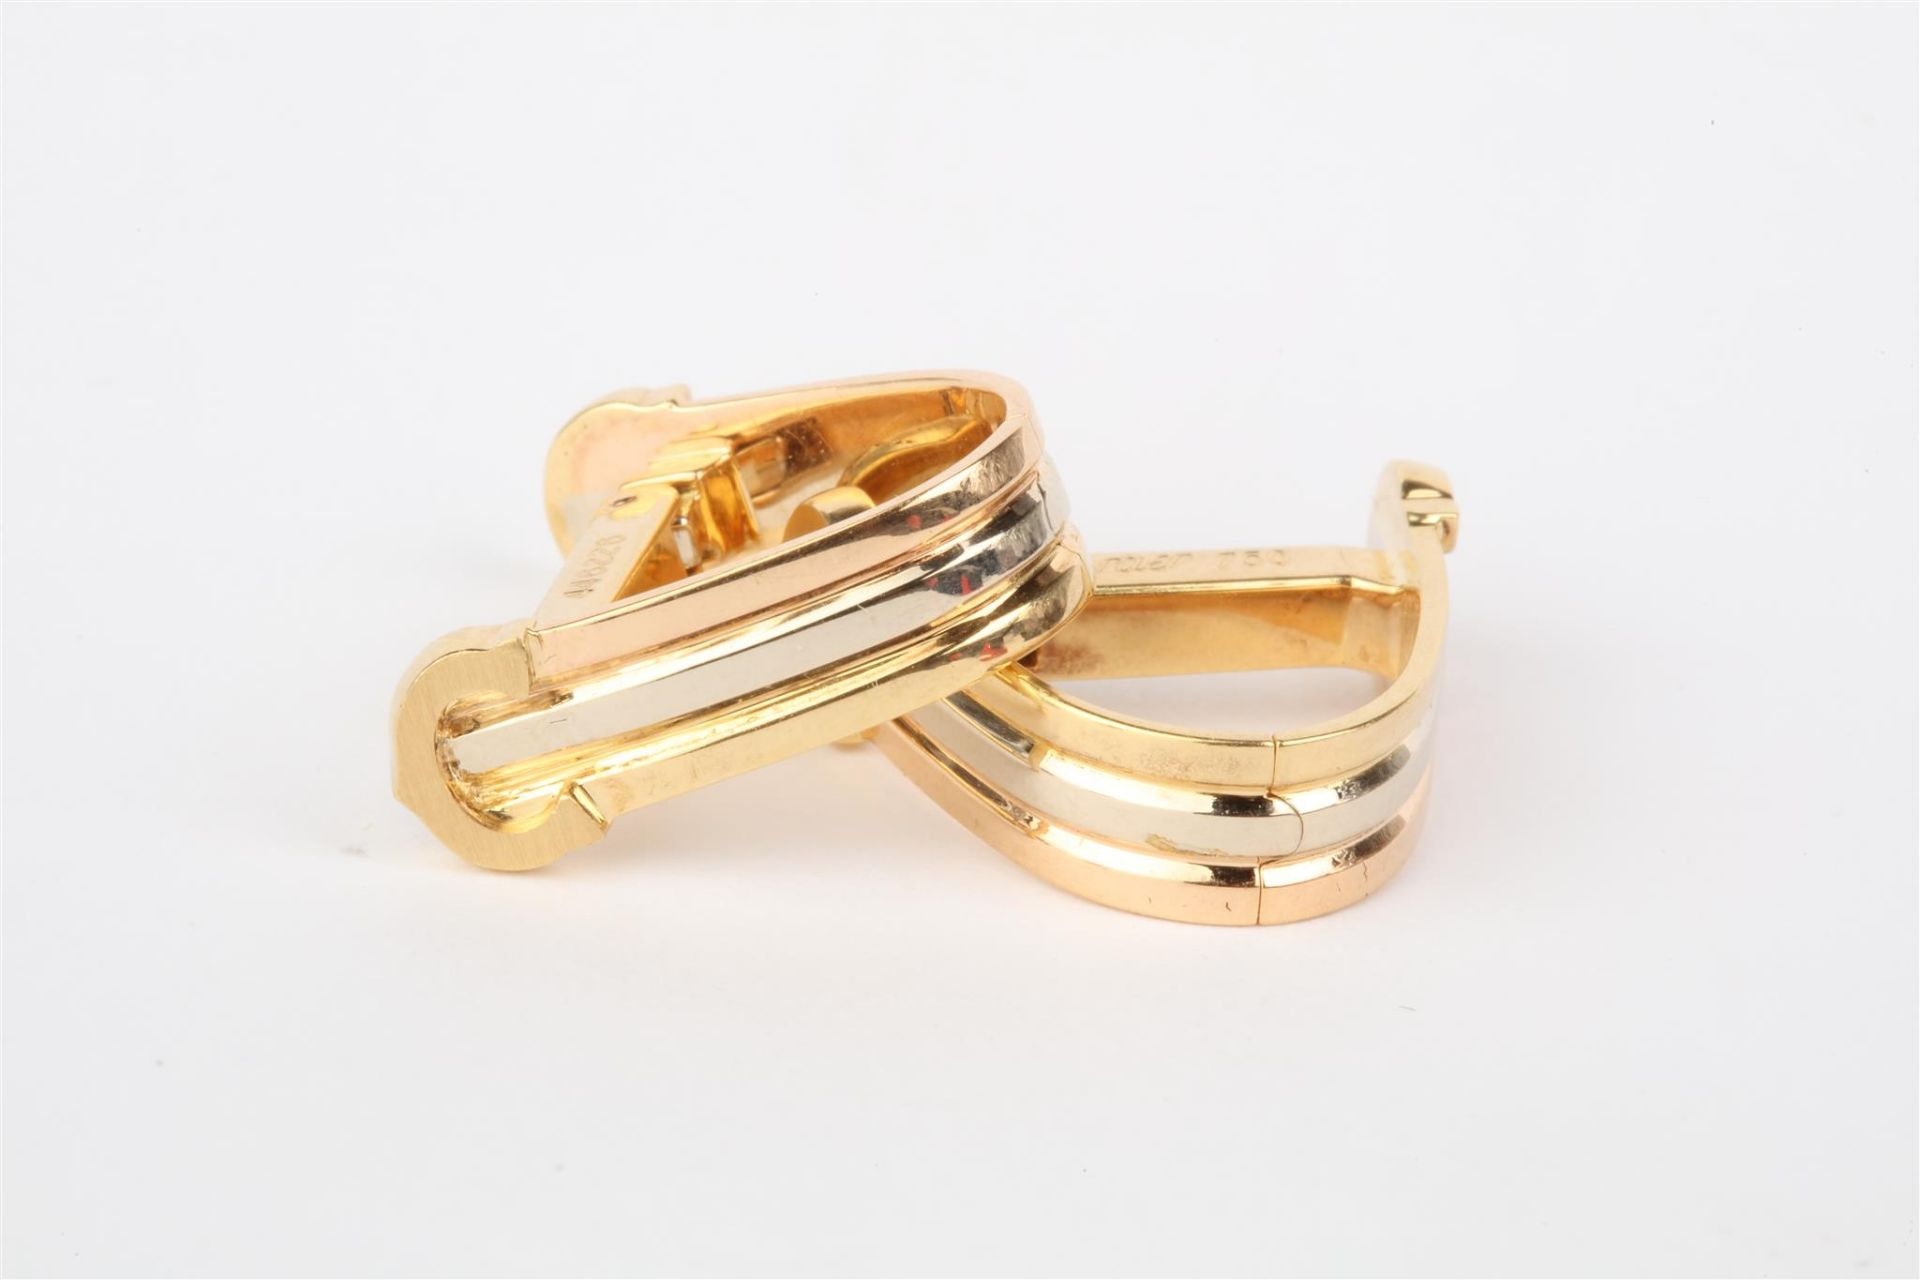 No VAT Pair Ladies Cartier 18ct Gold Trinity Clip On Earrings With 18ct White Gold - 18ct Yellow - Image 2 of 2